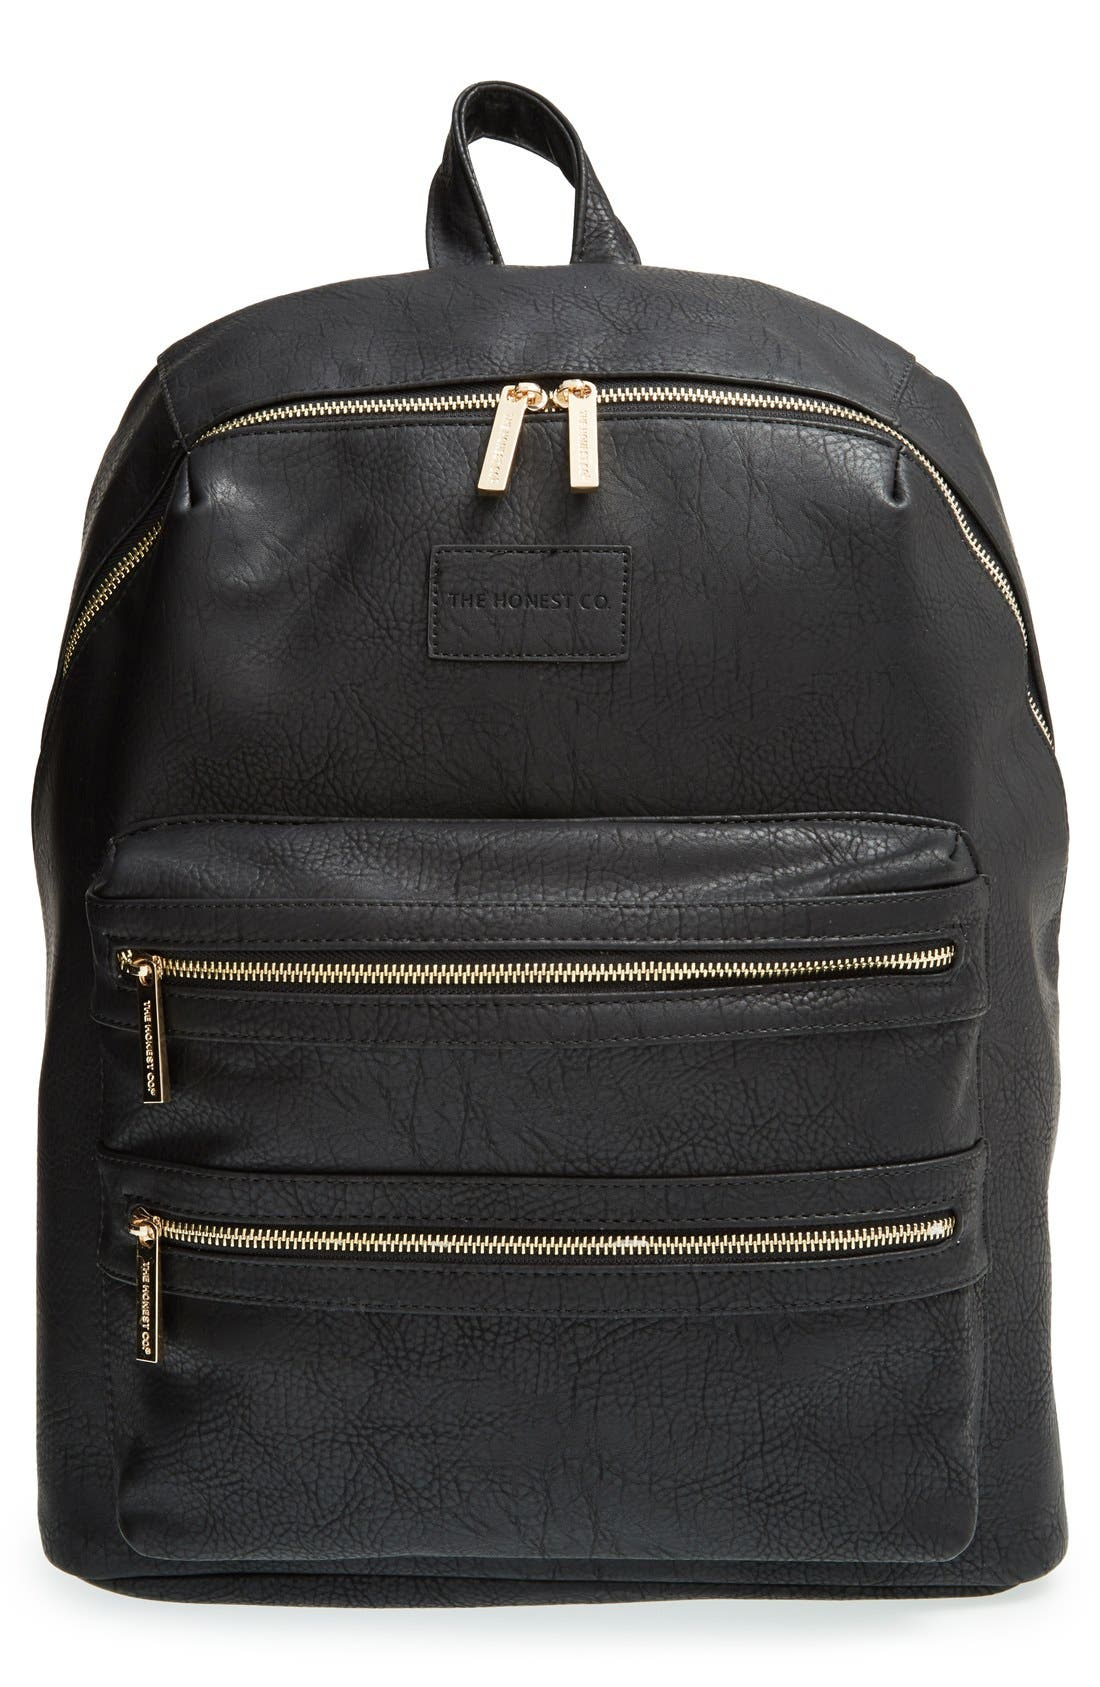 THE HONEST COMPANY 'City' Faux Leather Diaper Backpack, Main, color, BLACK